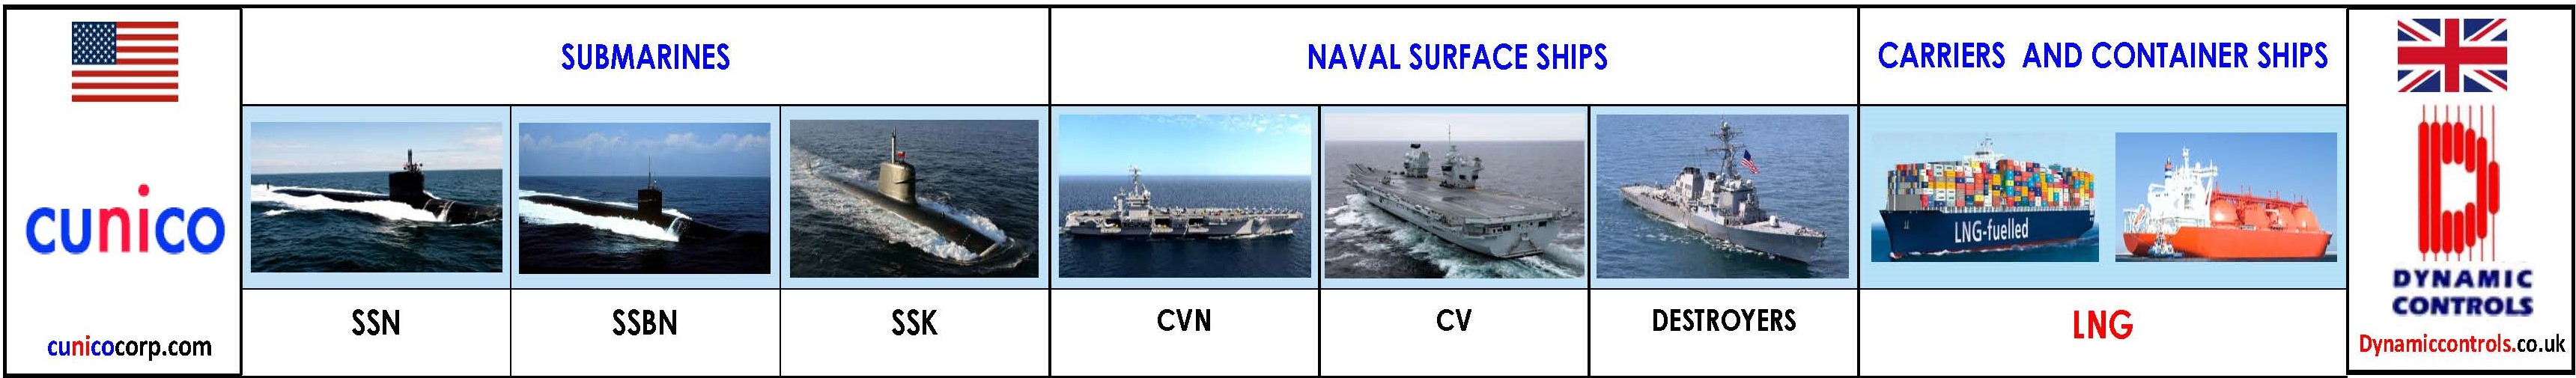 submarines and surface ships